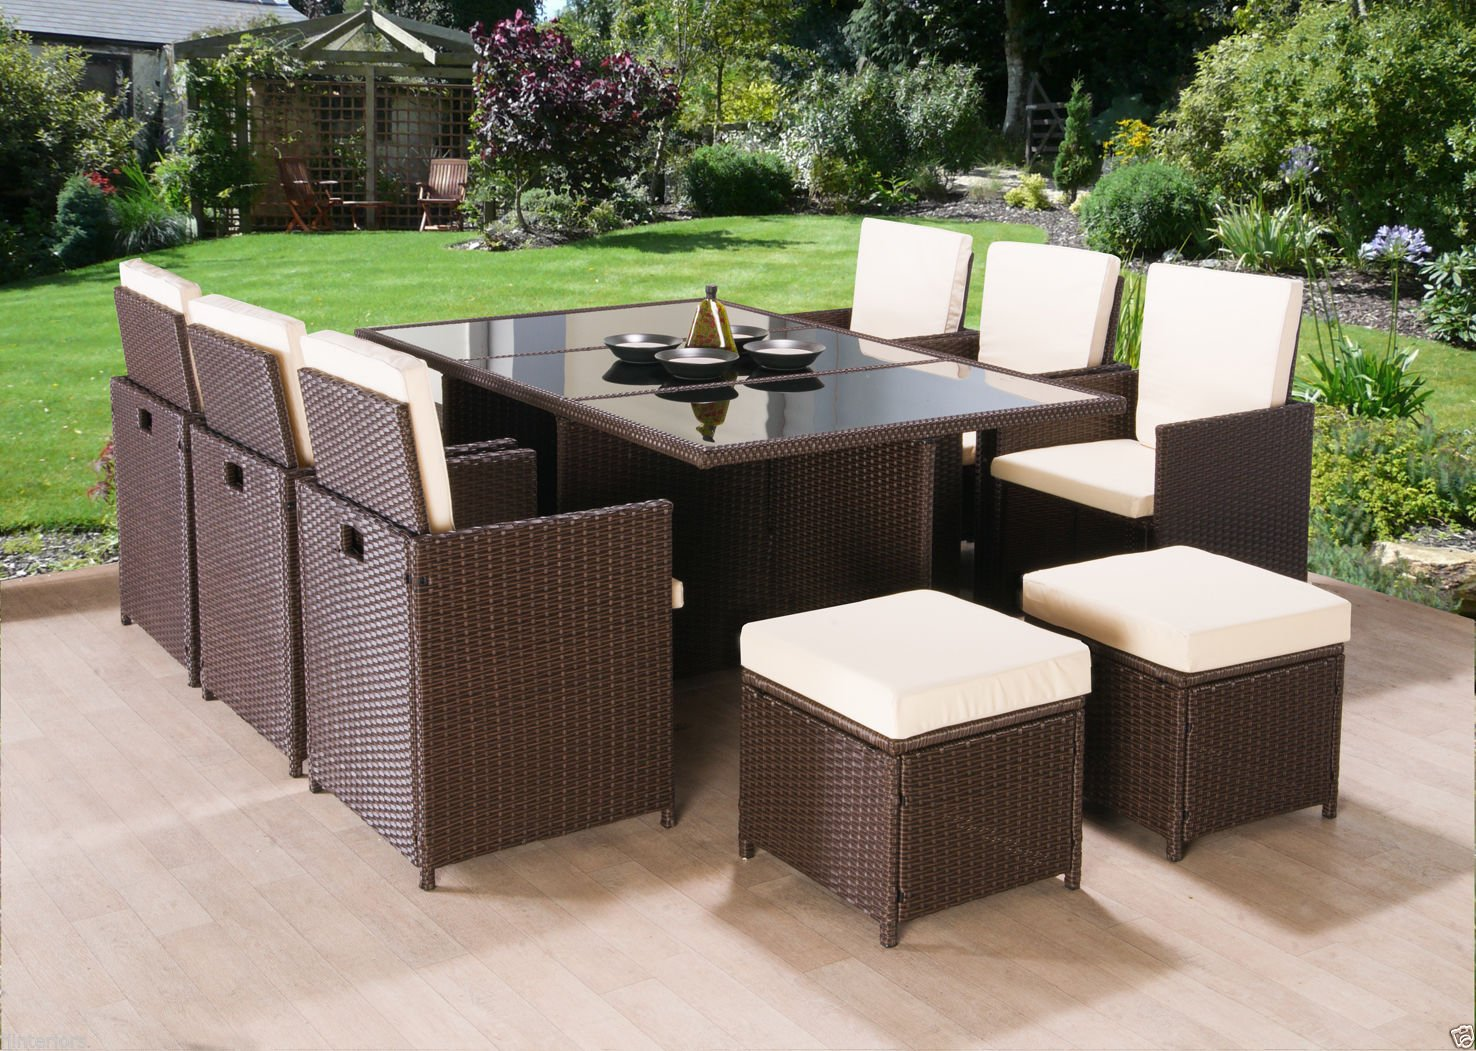 Luxury 10 Seater Rattan Garden Furniture Cube Set Dining Table ...